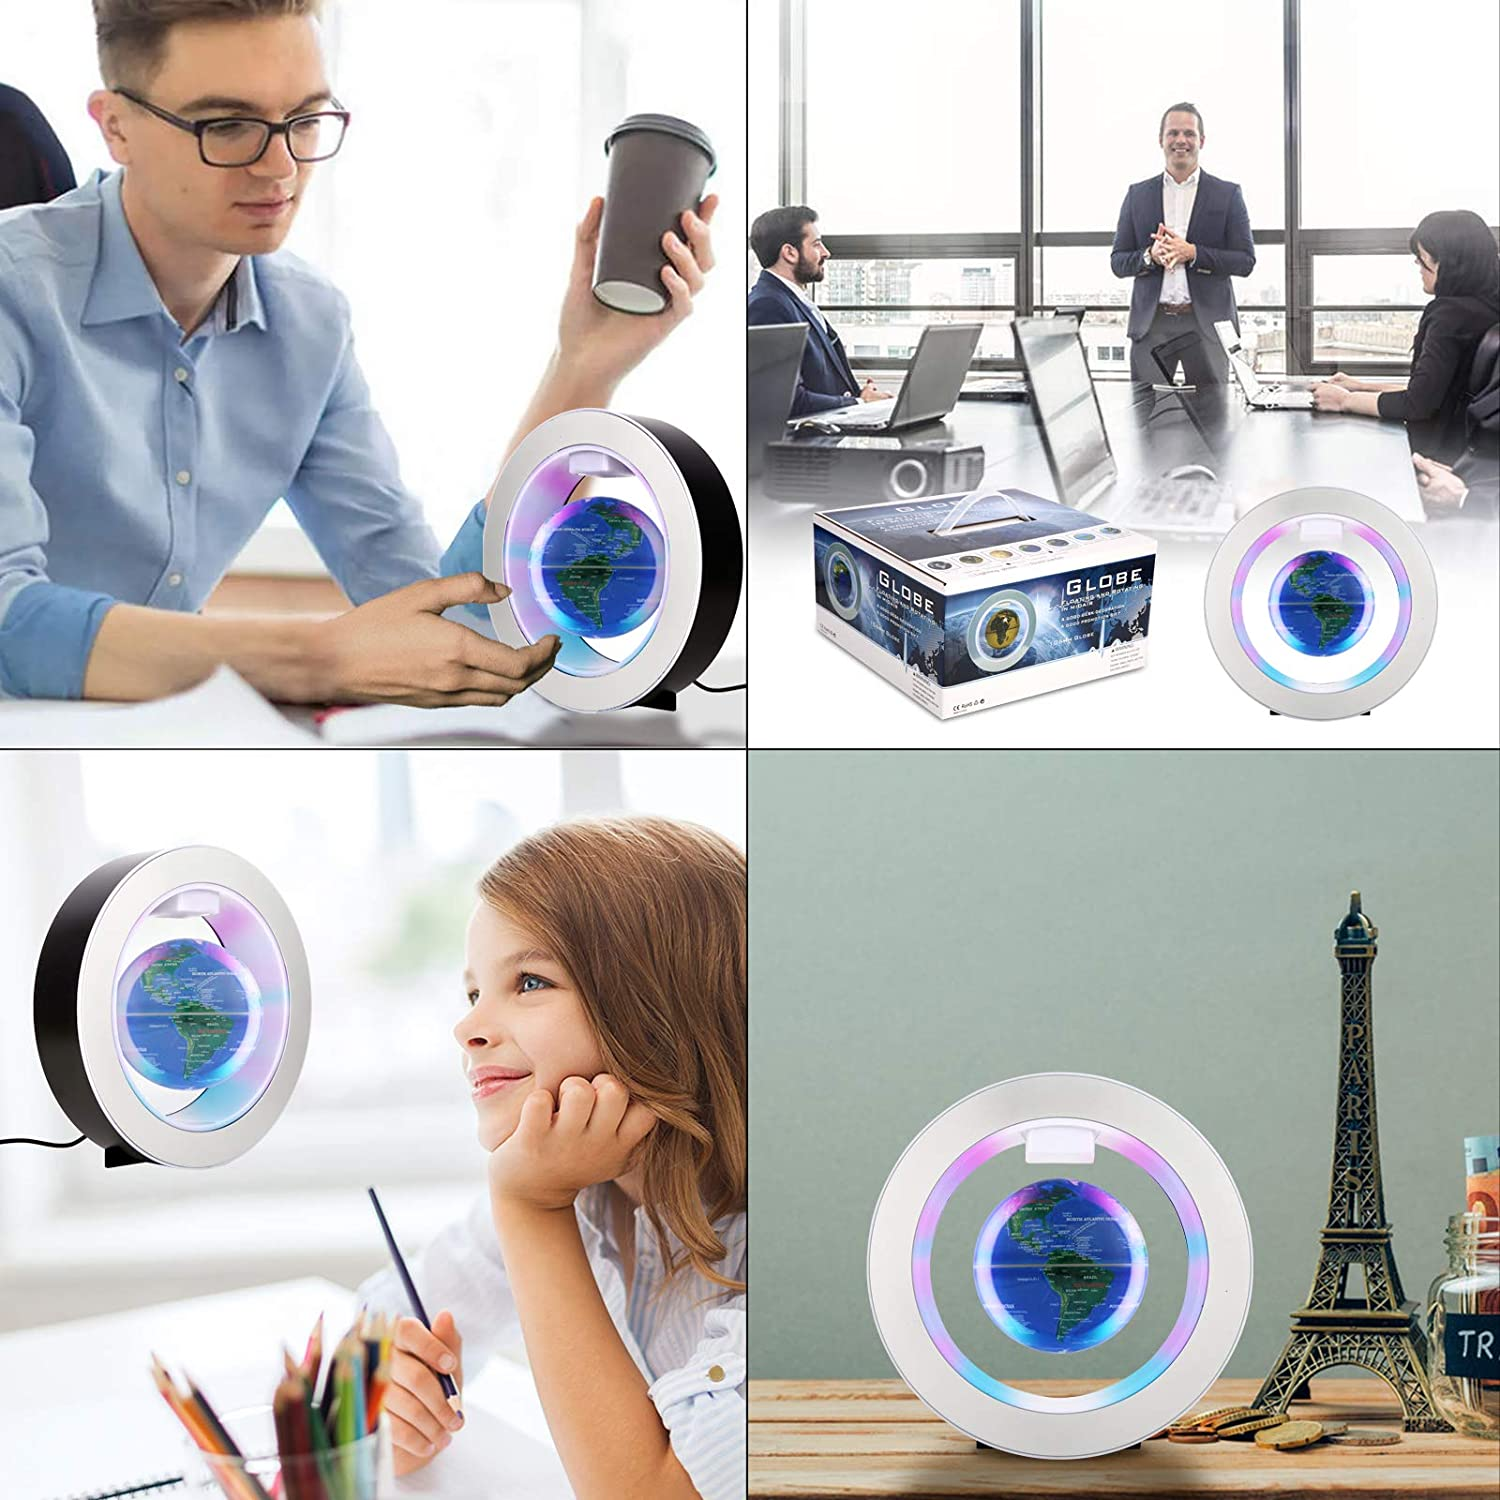 Gresus 4 Inch Auto-Rotate Magnetic Levitation Floating World Map Globe with Round Shape Base Blue Great Fathers Students Teacher Business Boyfriend Birthday Gift for Desk Decoration